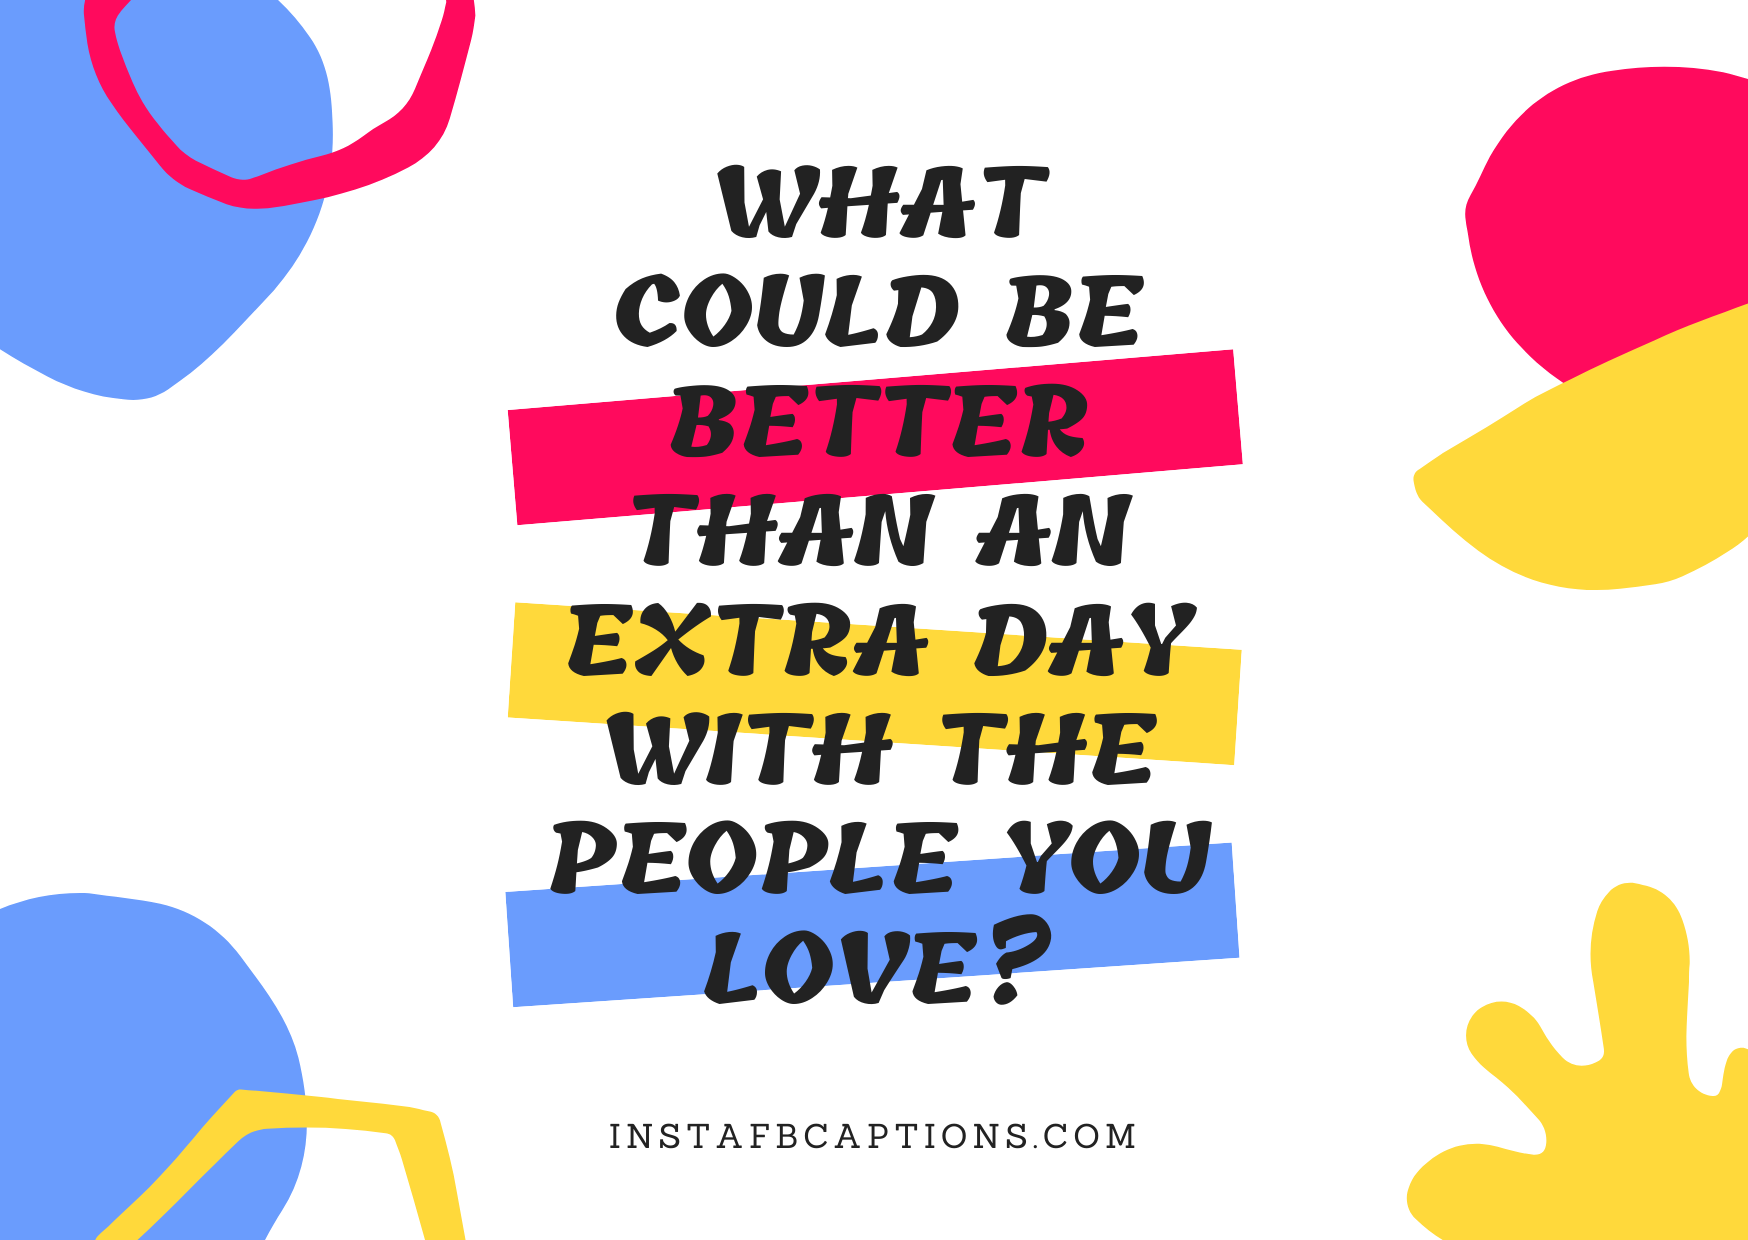 Classic Quotes On Leap Year For Instagram  - Classic Quotes on Leap Year for Instagram - 58+ LEAP YEAR Instagram Captions for Birthdays & February in 2022